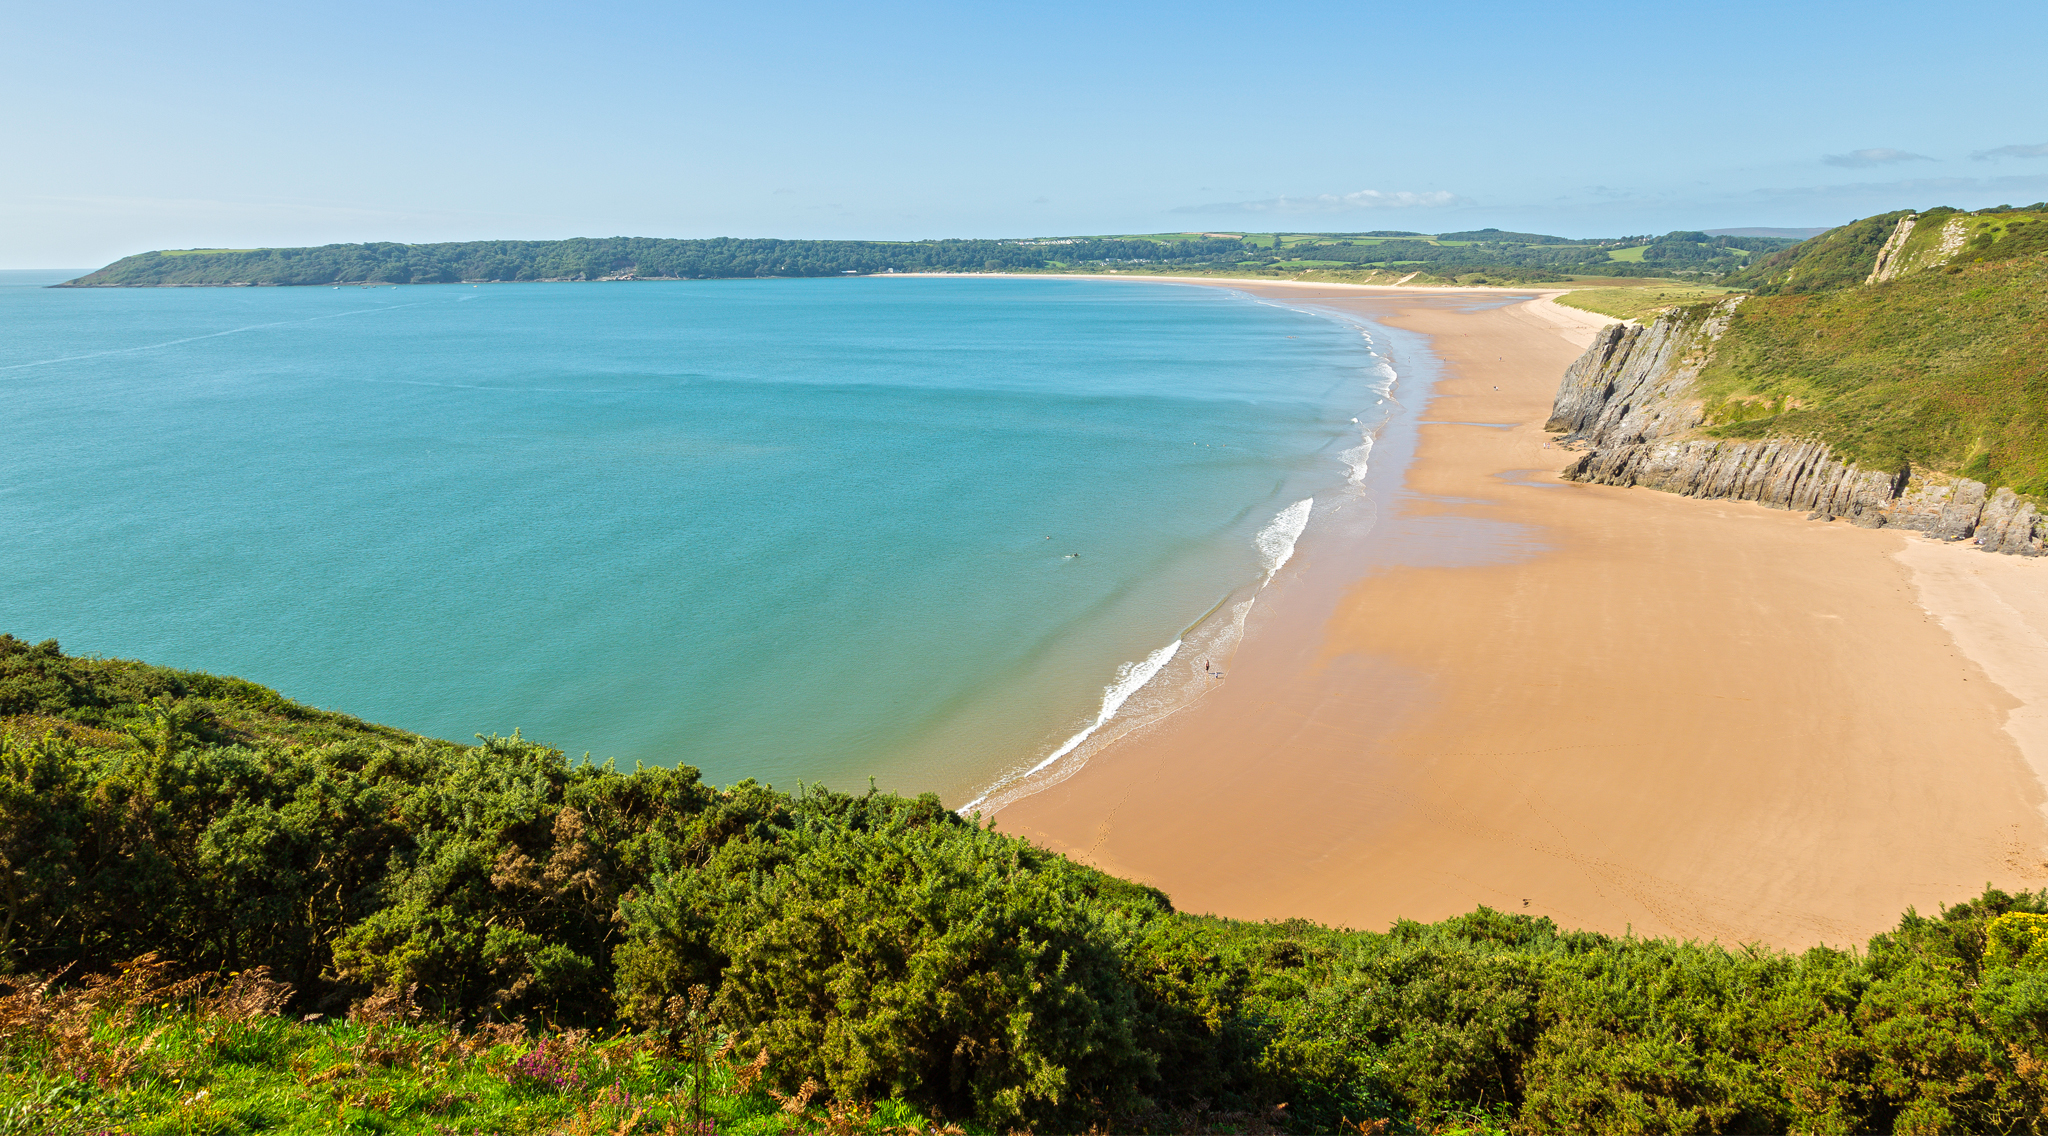 The UK's best hidden beaches - 15 beautiful secluded beaches